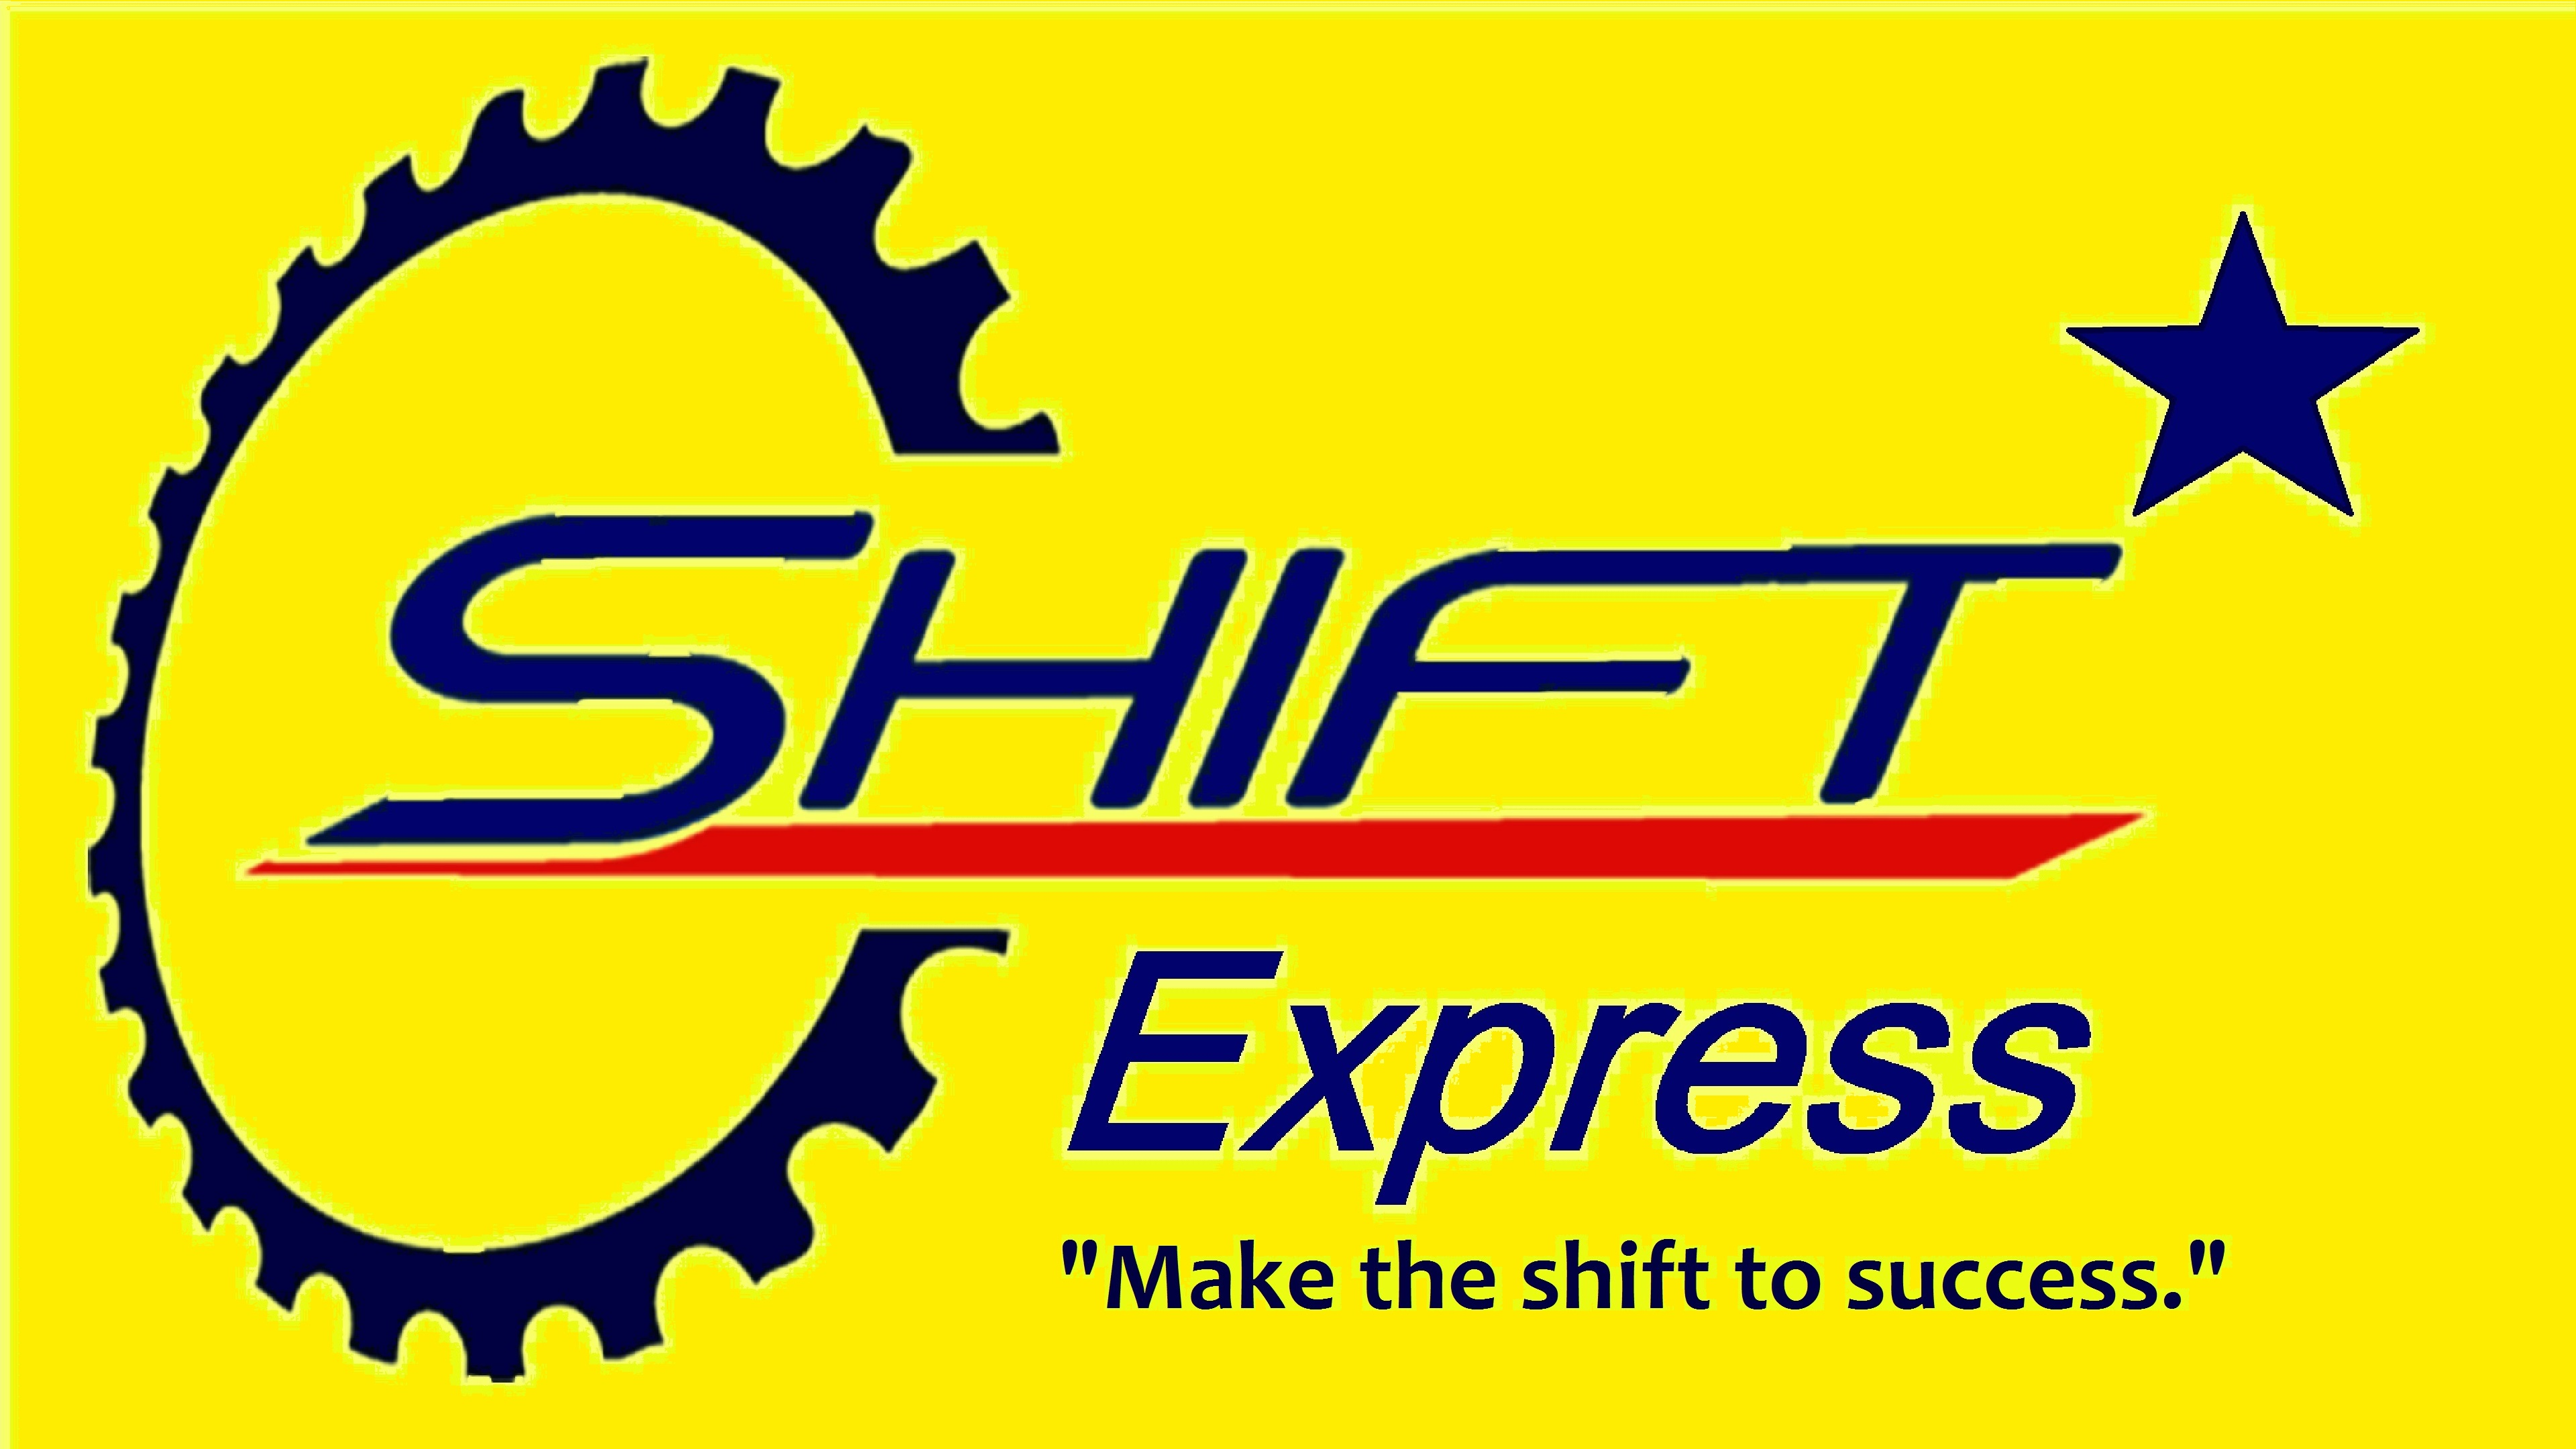 SHIFT Express Logistics